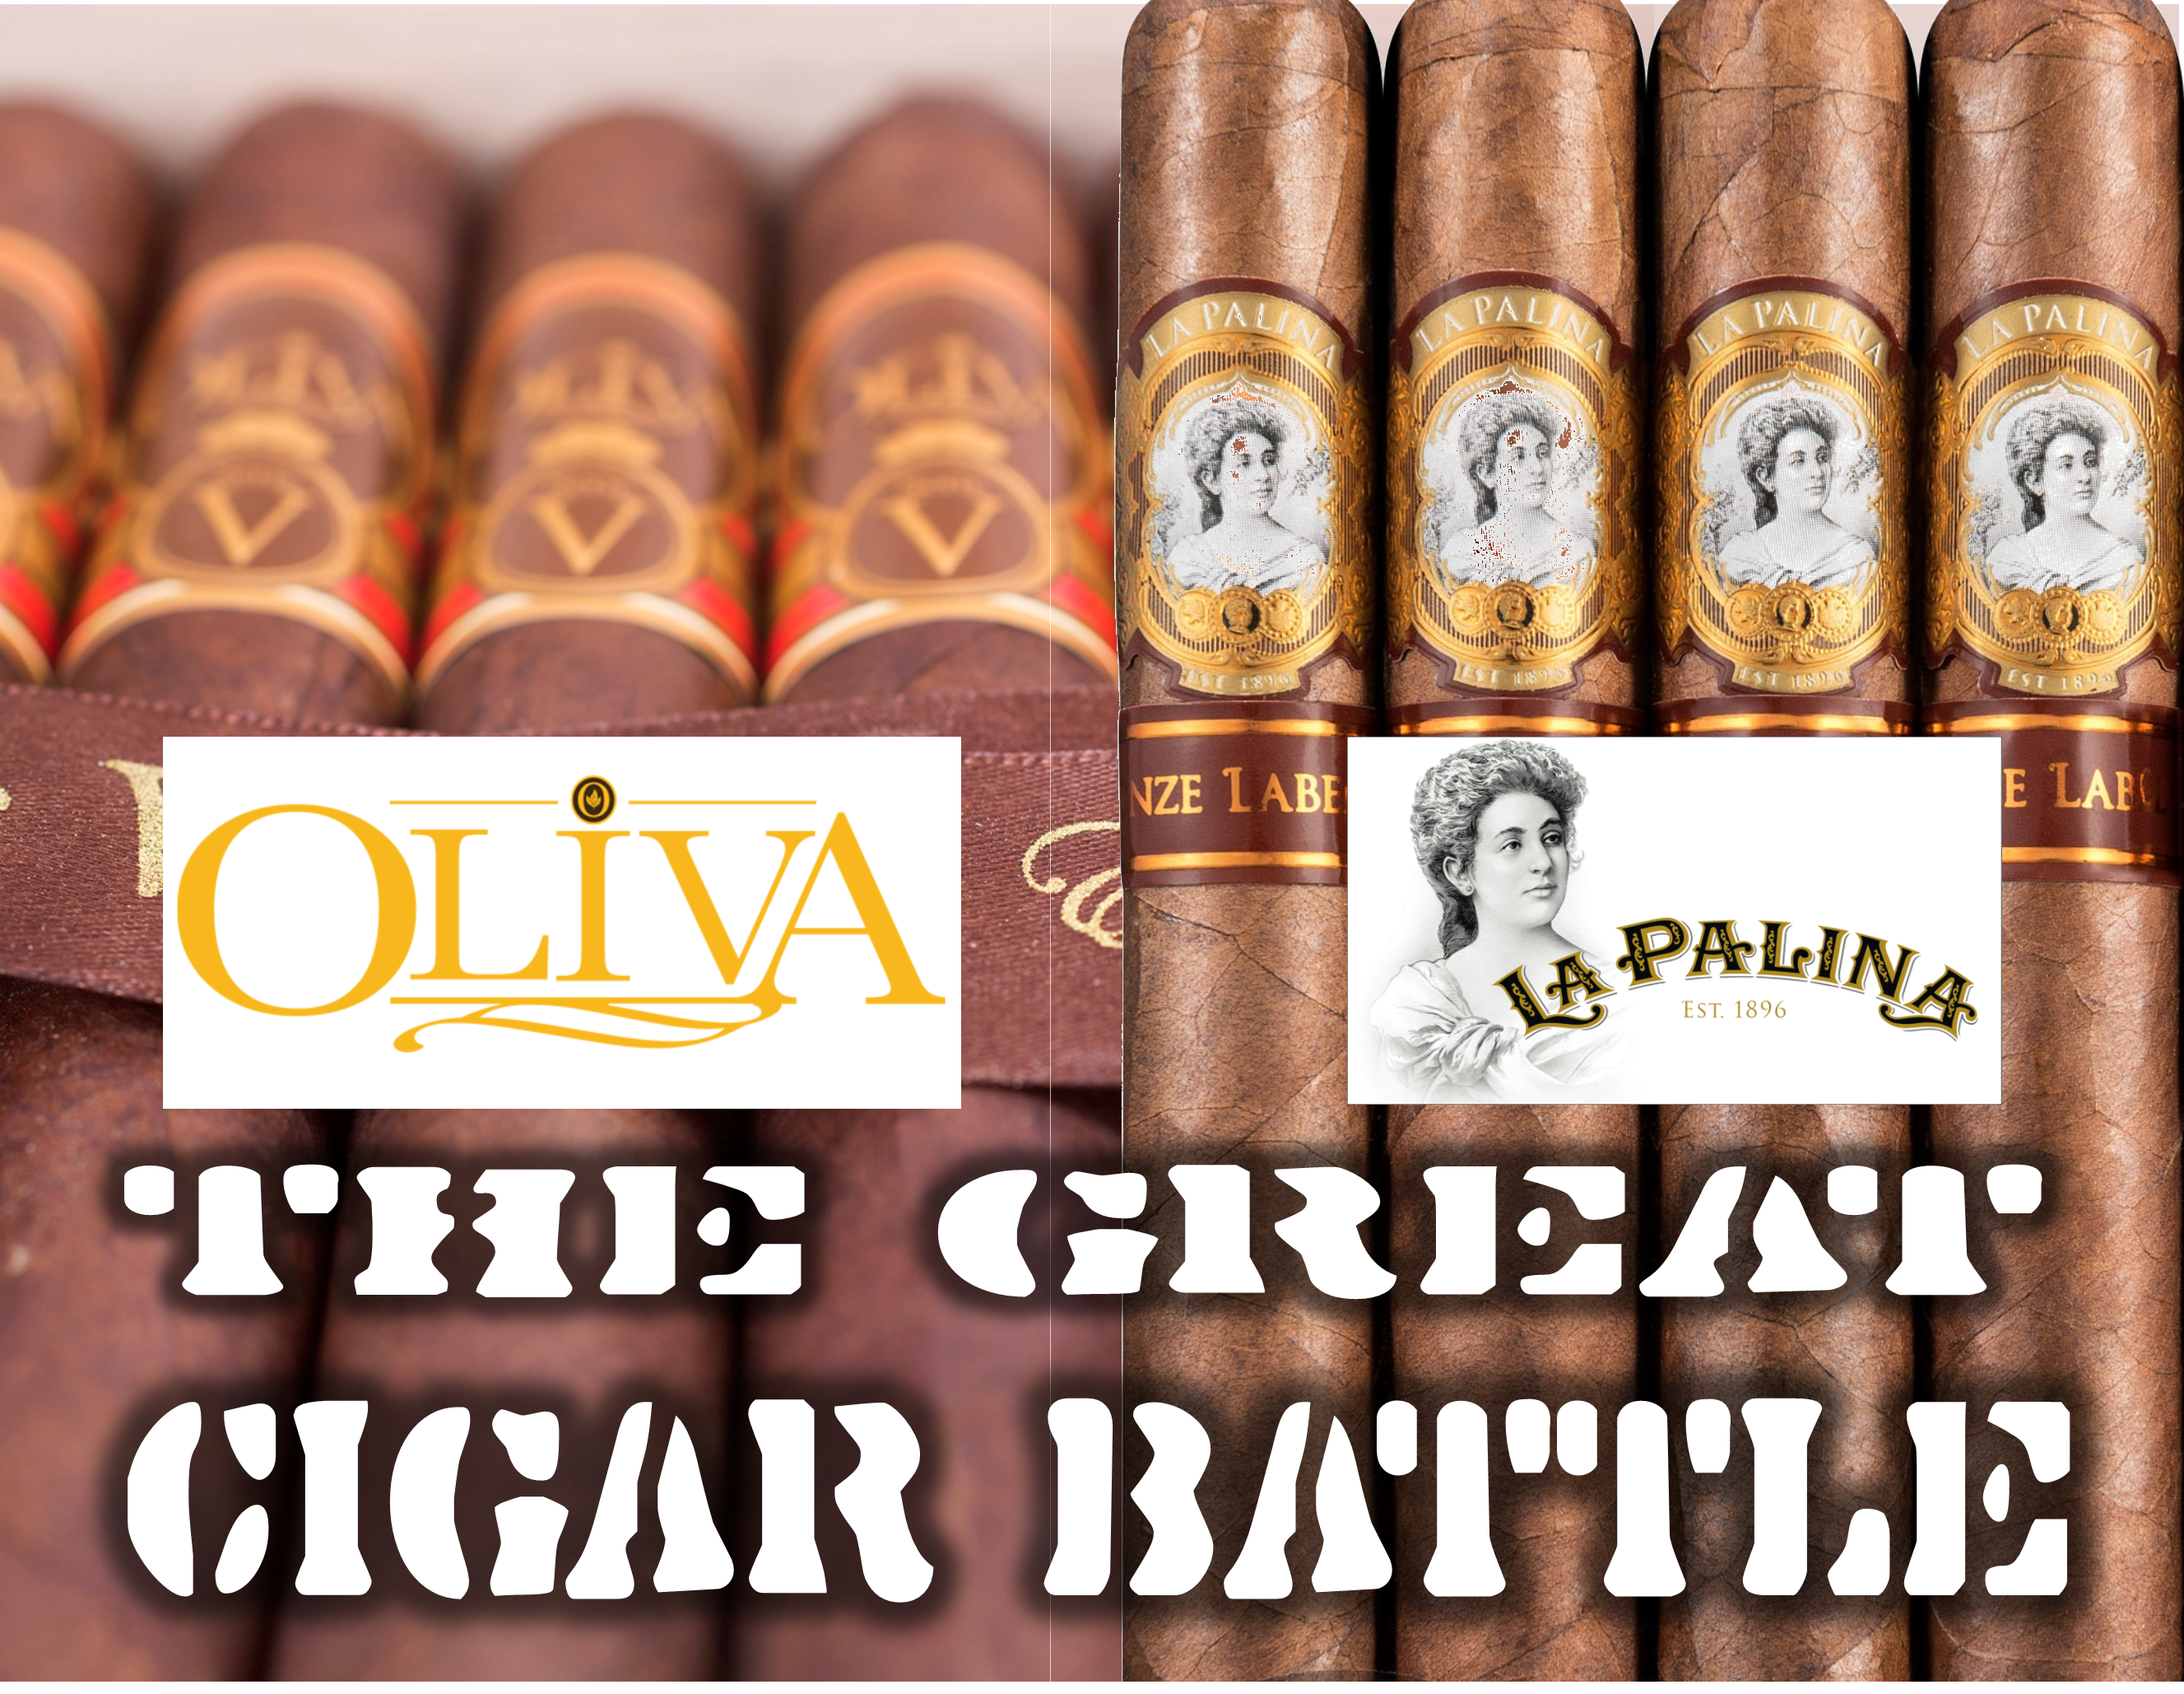 The Great Cigar Battle